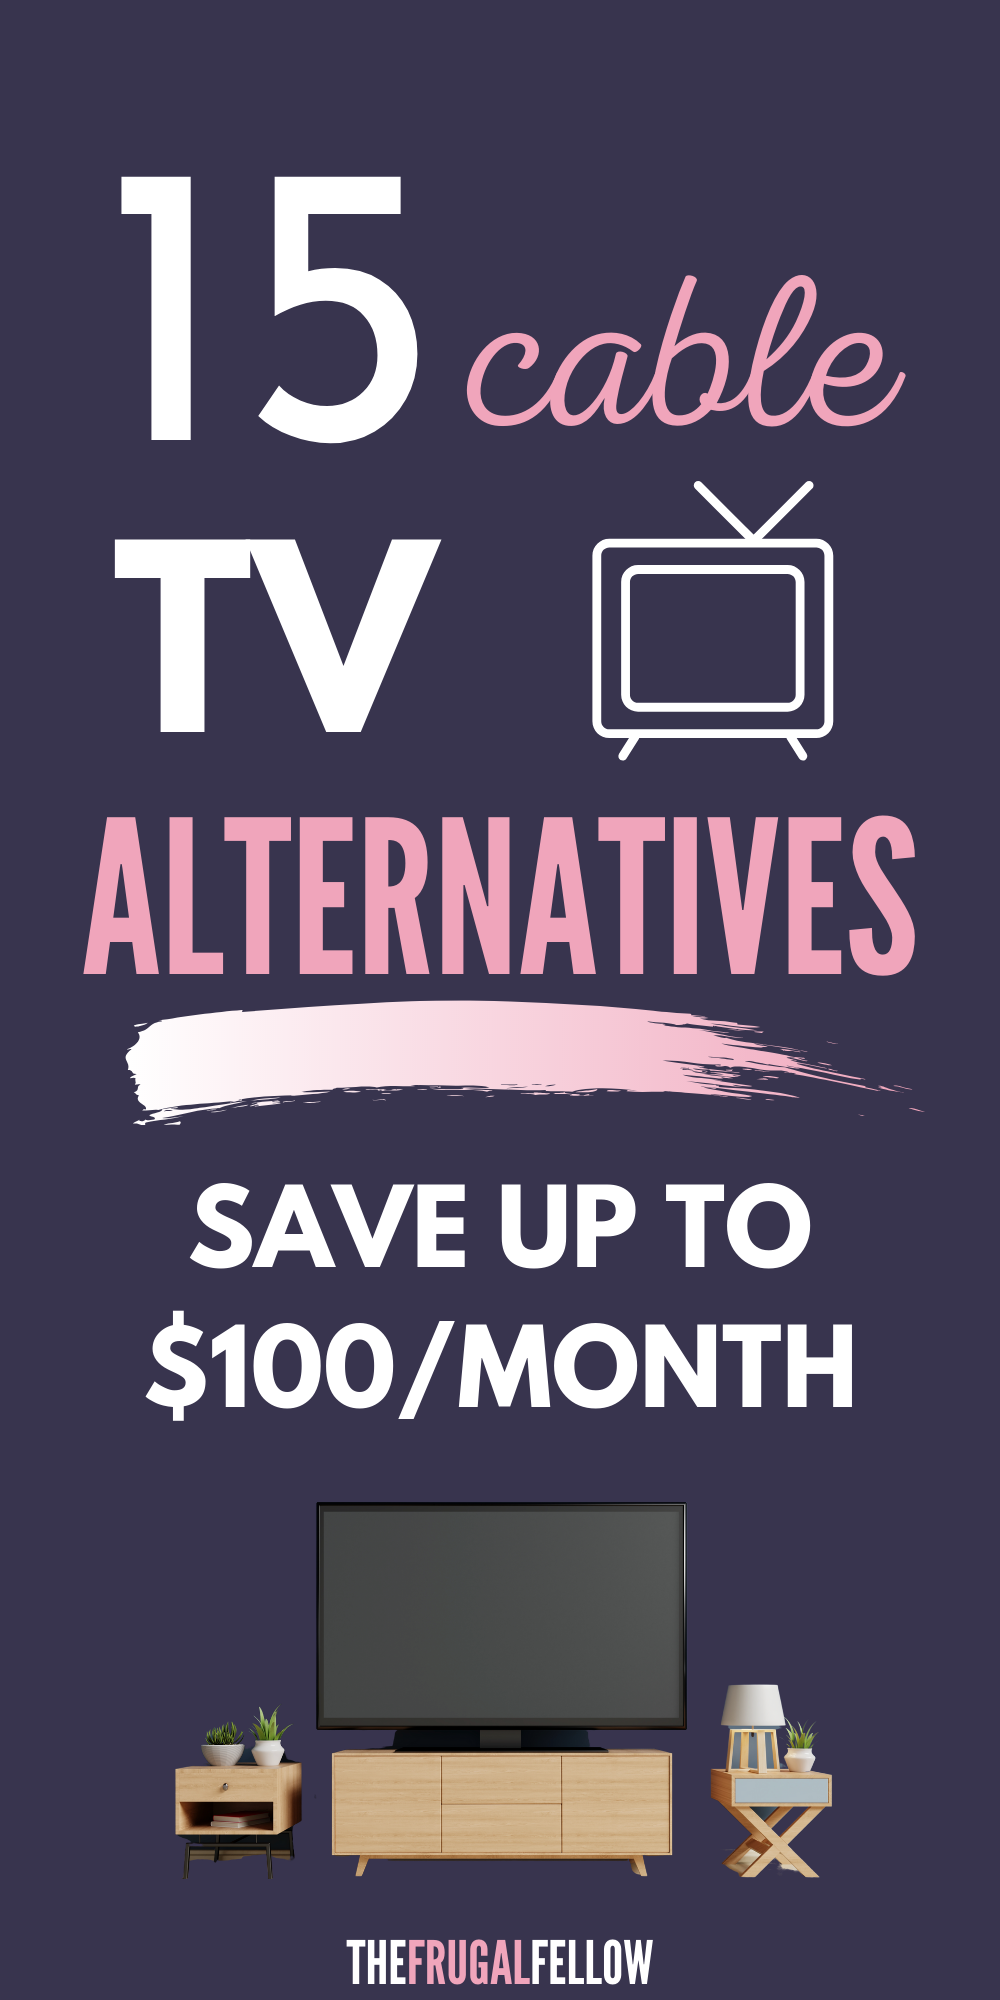 Streaming TV by watching Hulu TV shows, Apple TV, and other services can be a great way to save money on TV.